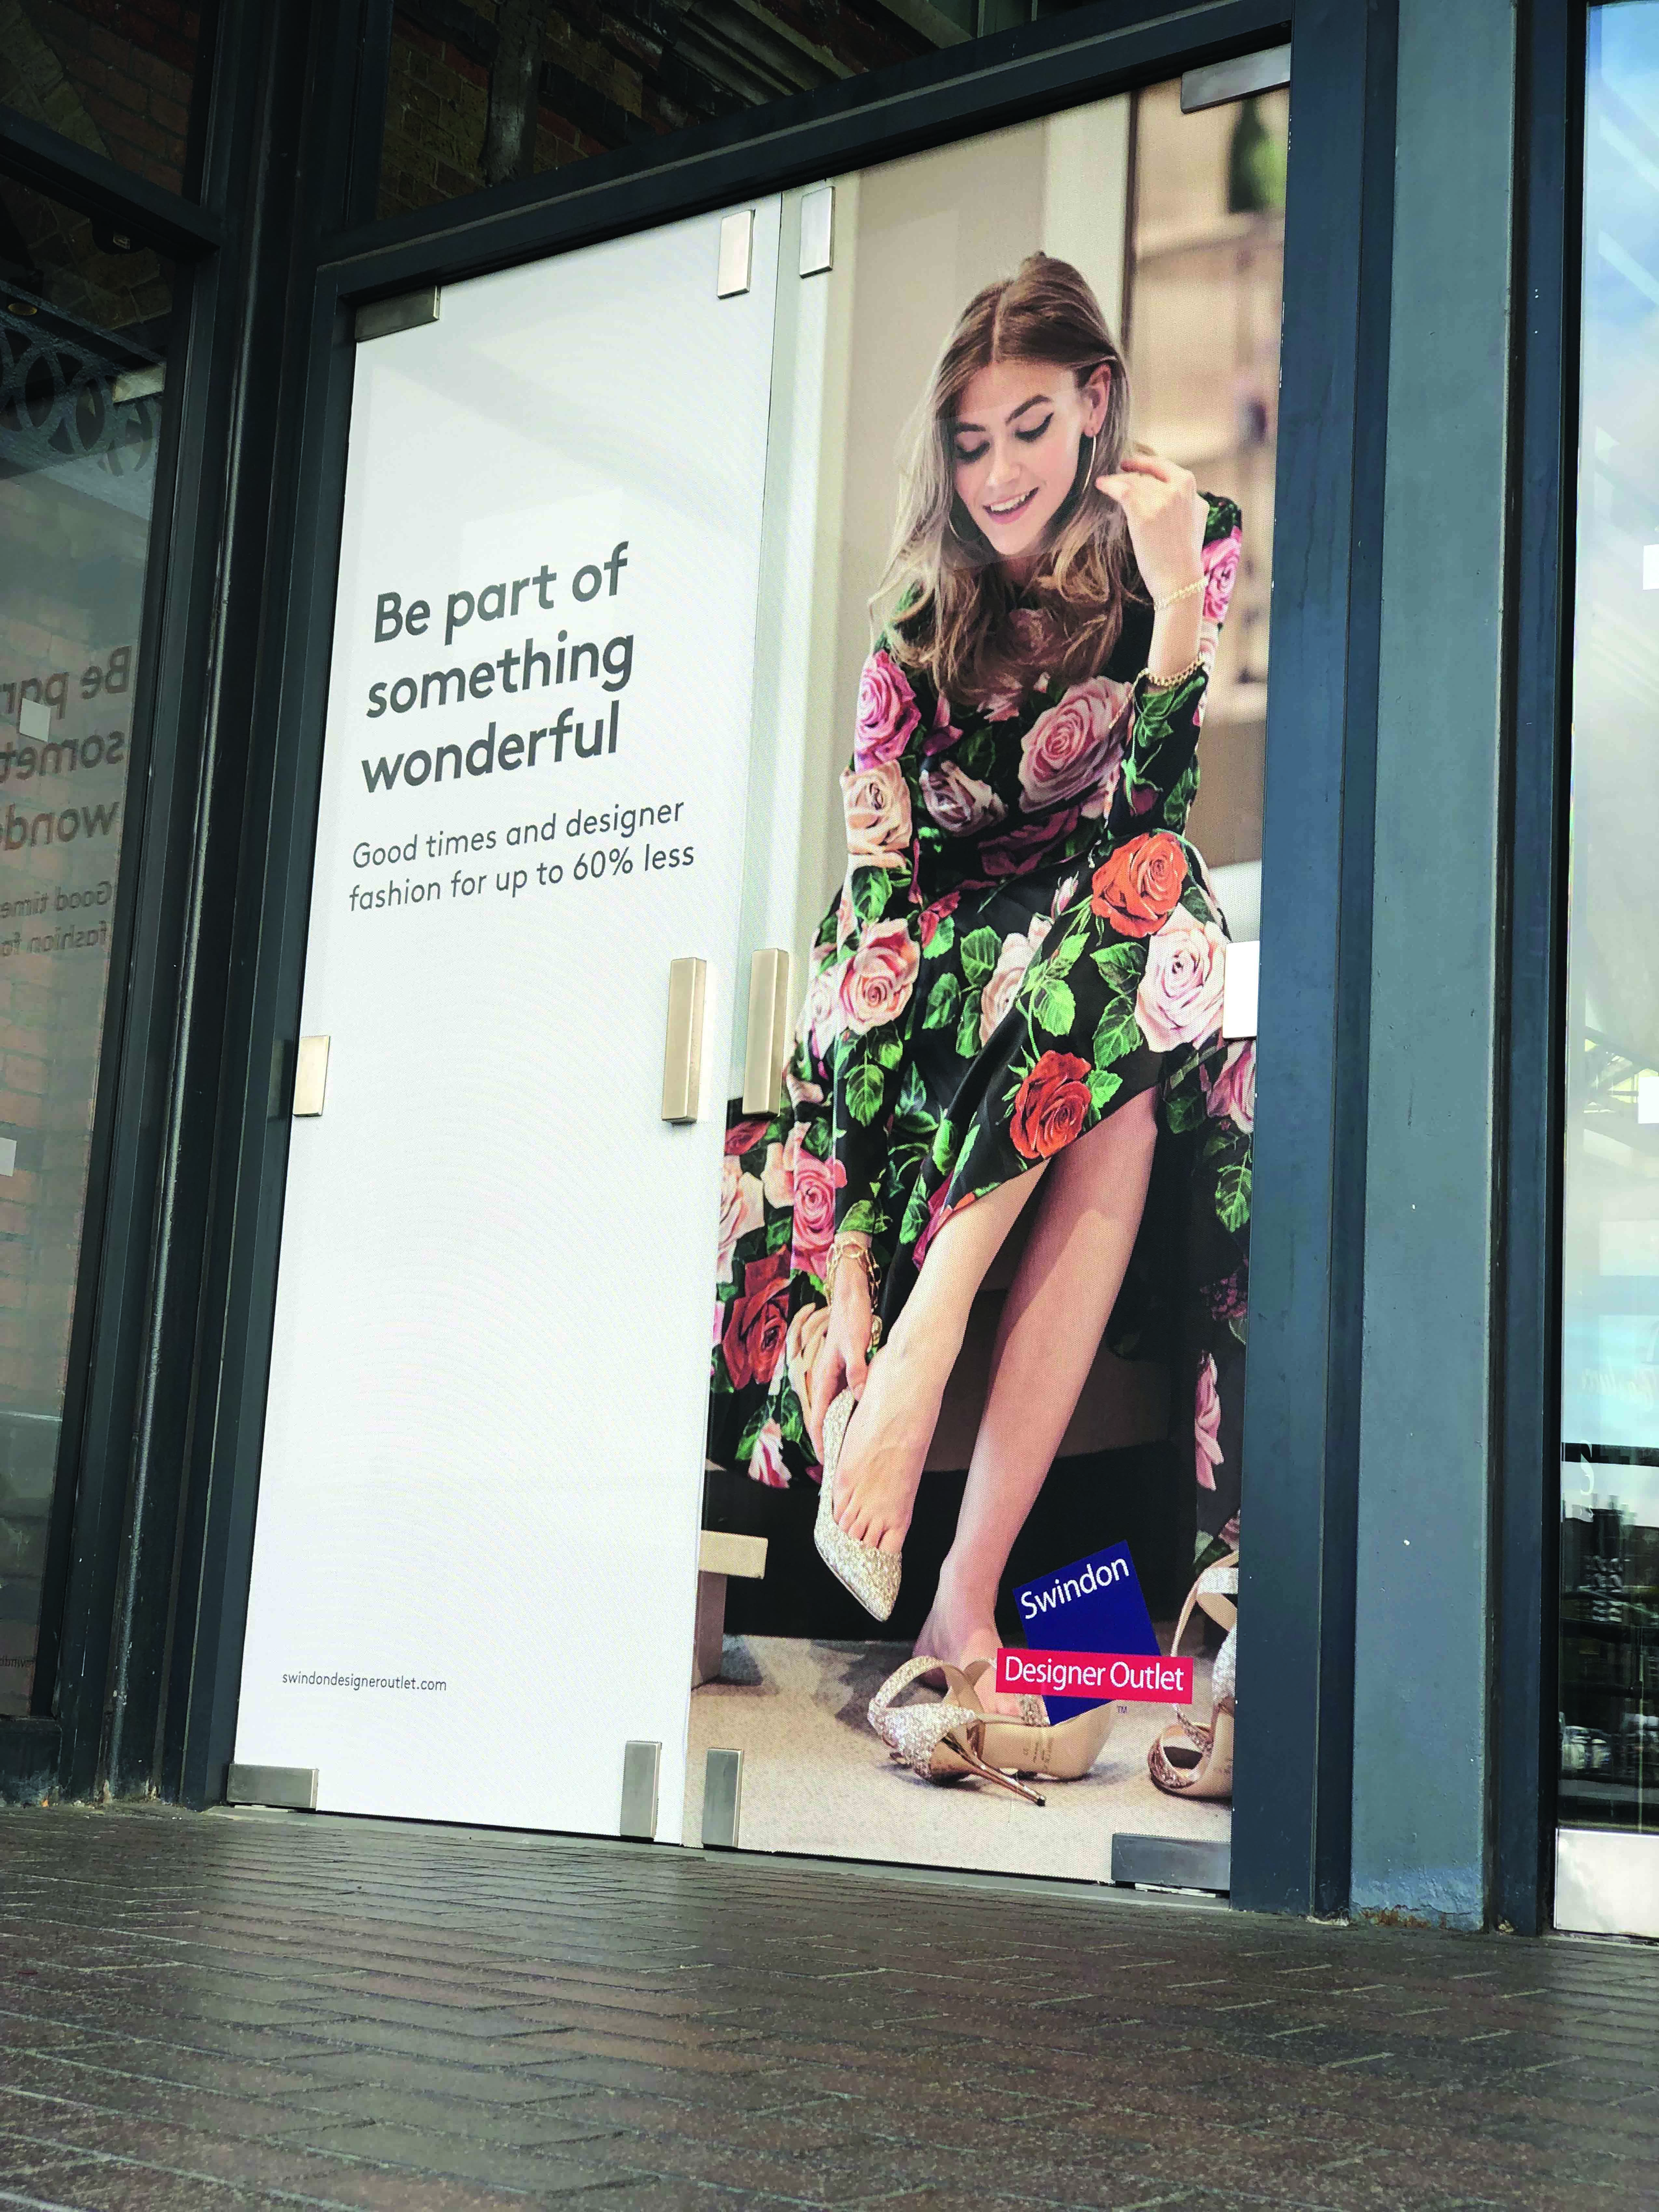 Window graphics at the Swindon Designer Outlet